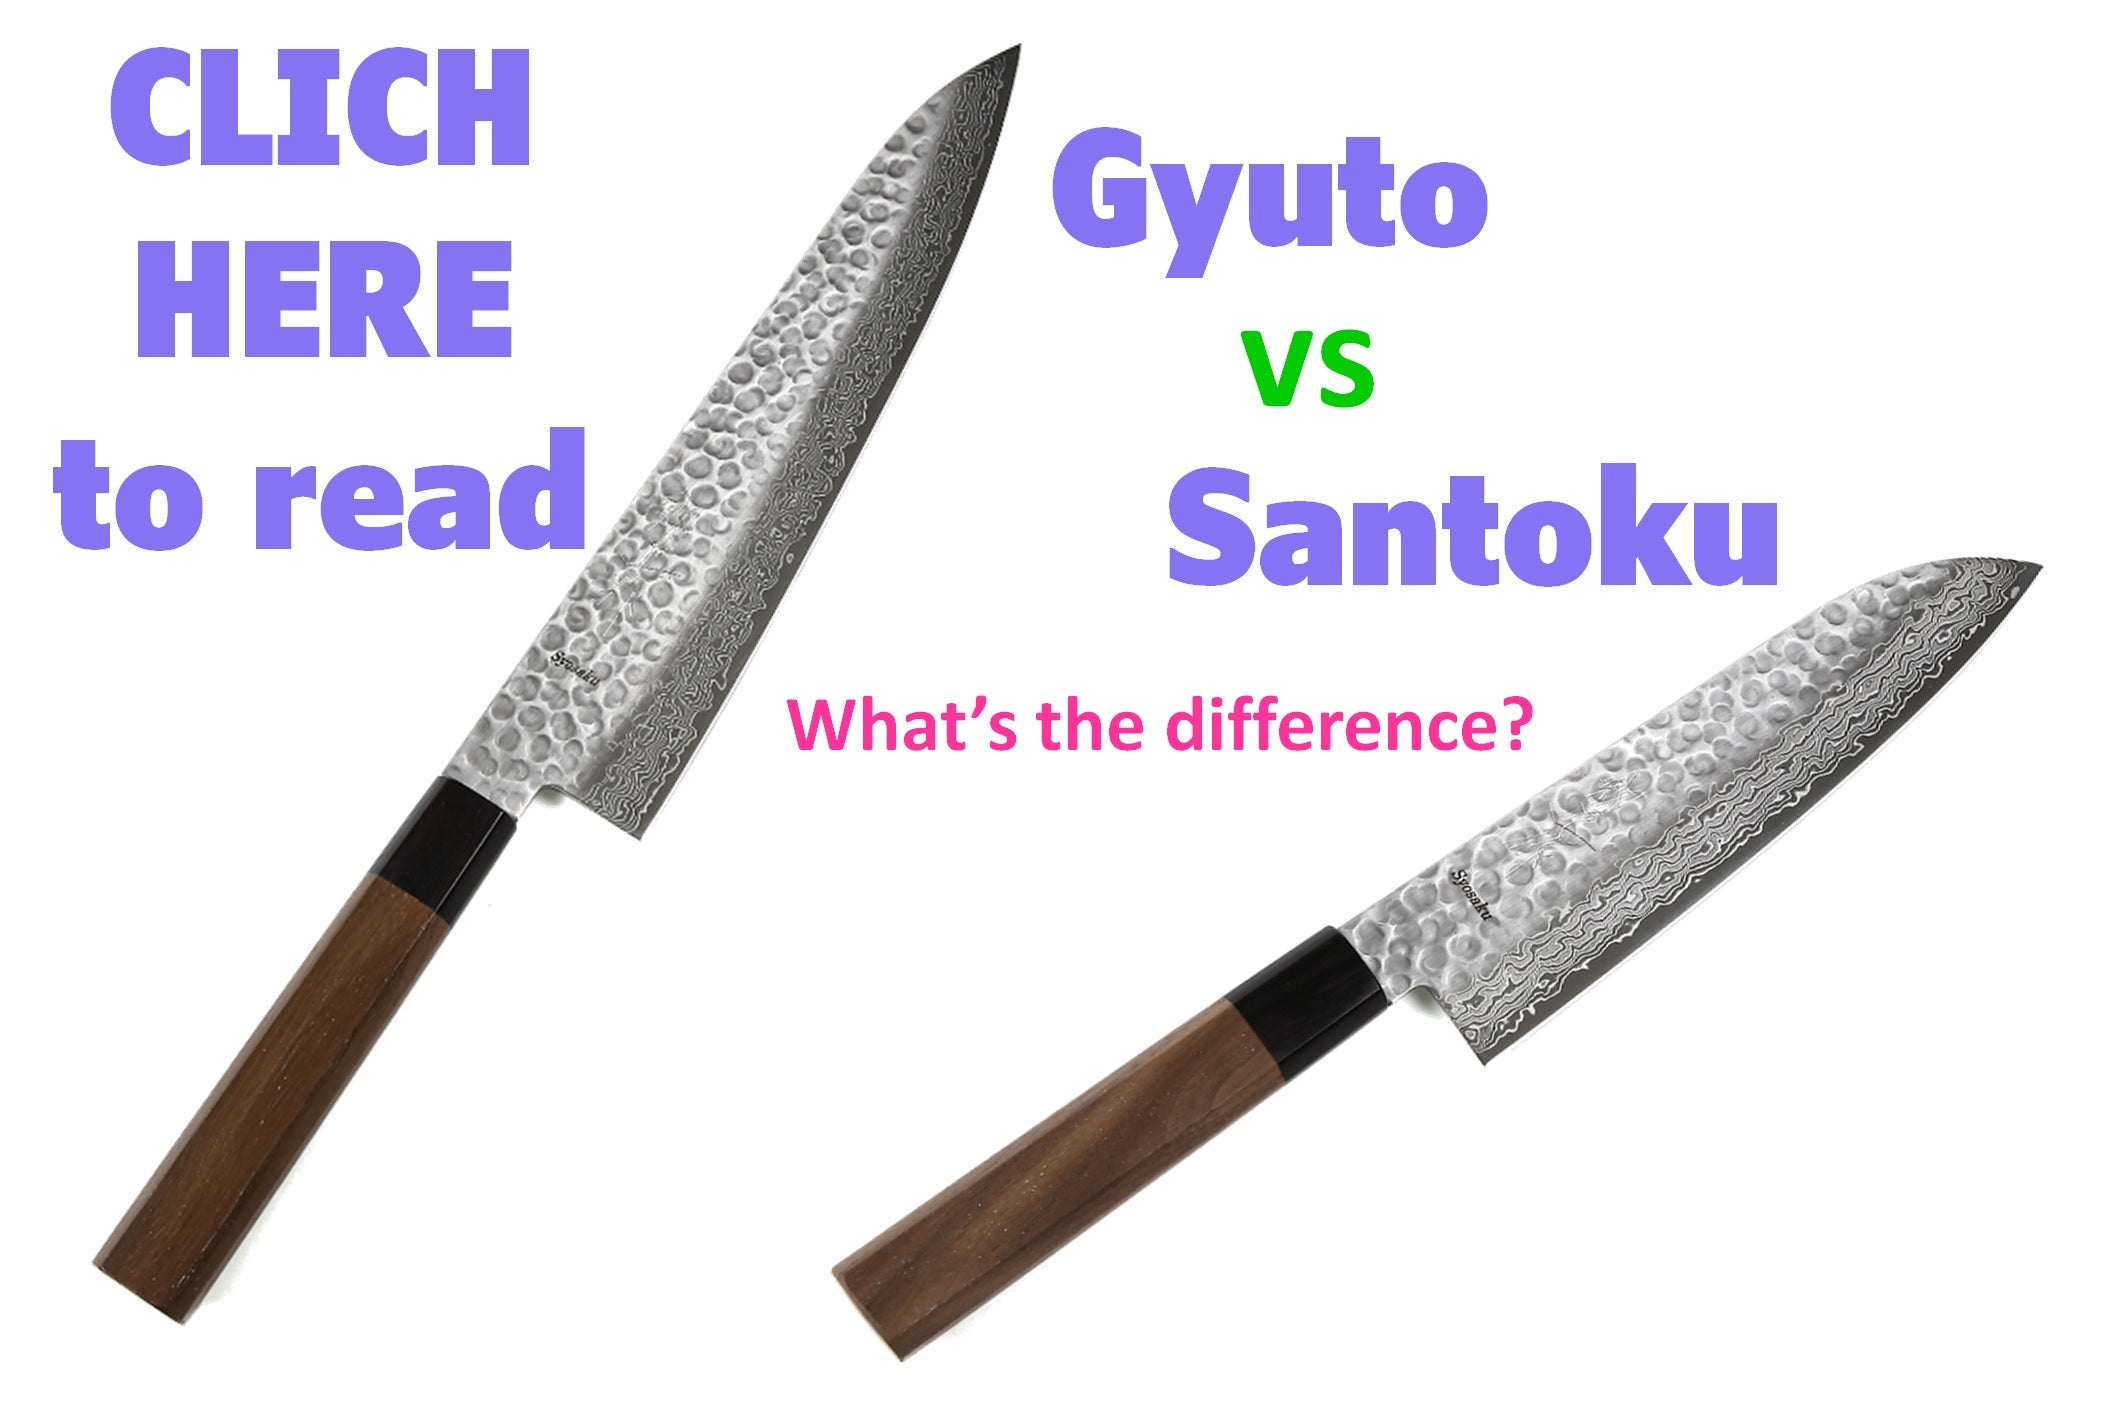 Link to read the difference between Gyuto and Santoku